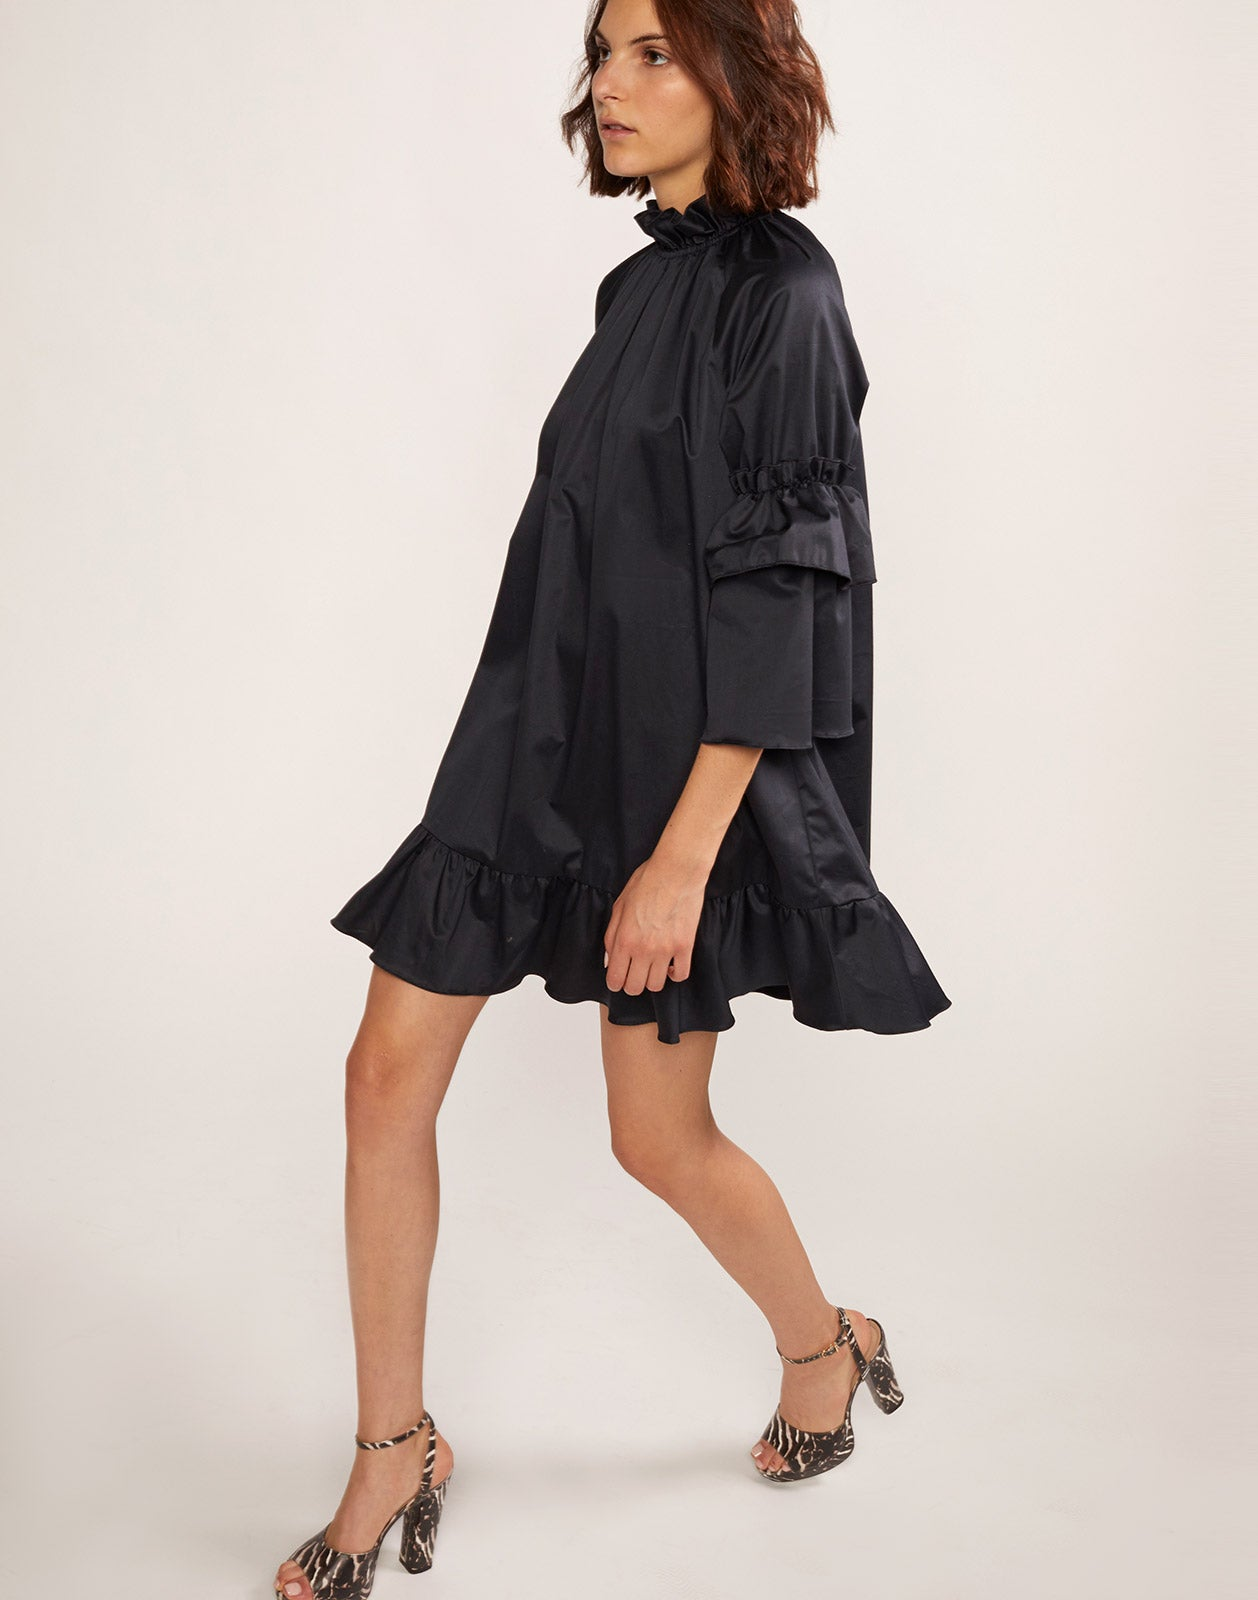 Alternate full side view model wearing Eden Ruffle Sleeve Mini Dress